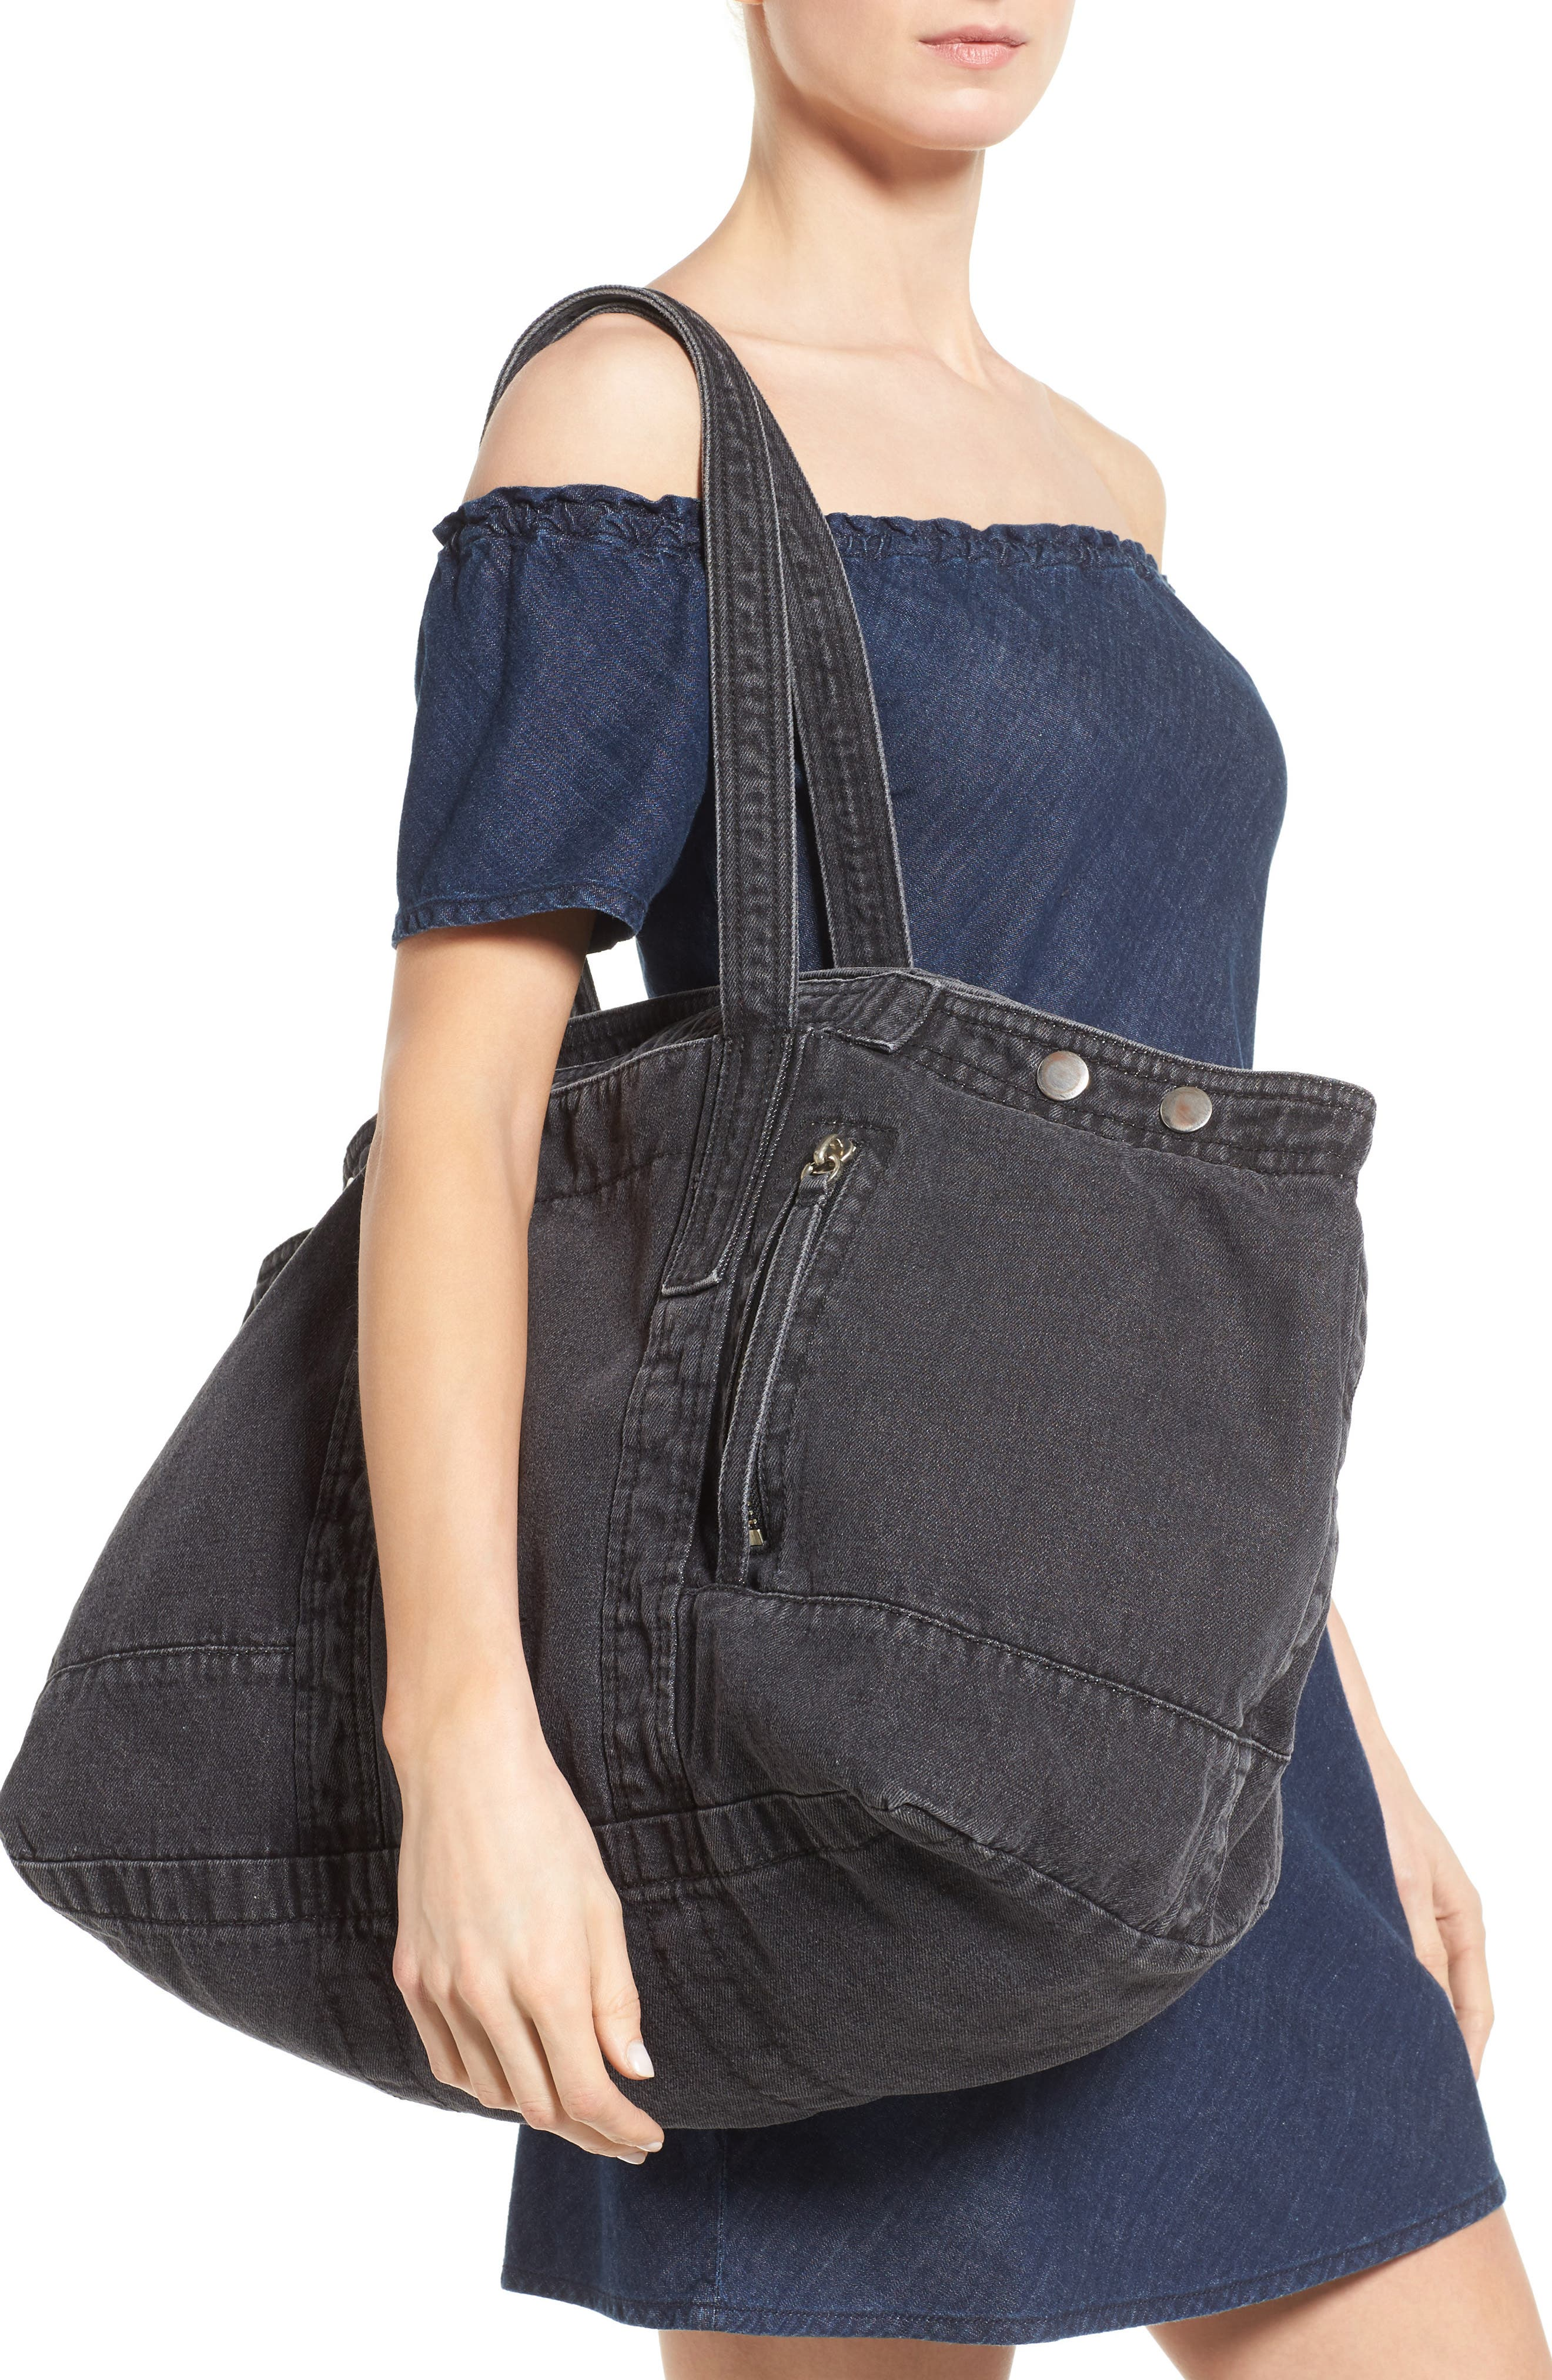 Field Tote,                             Alternate thumbnail 2, color,                             001